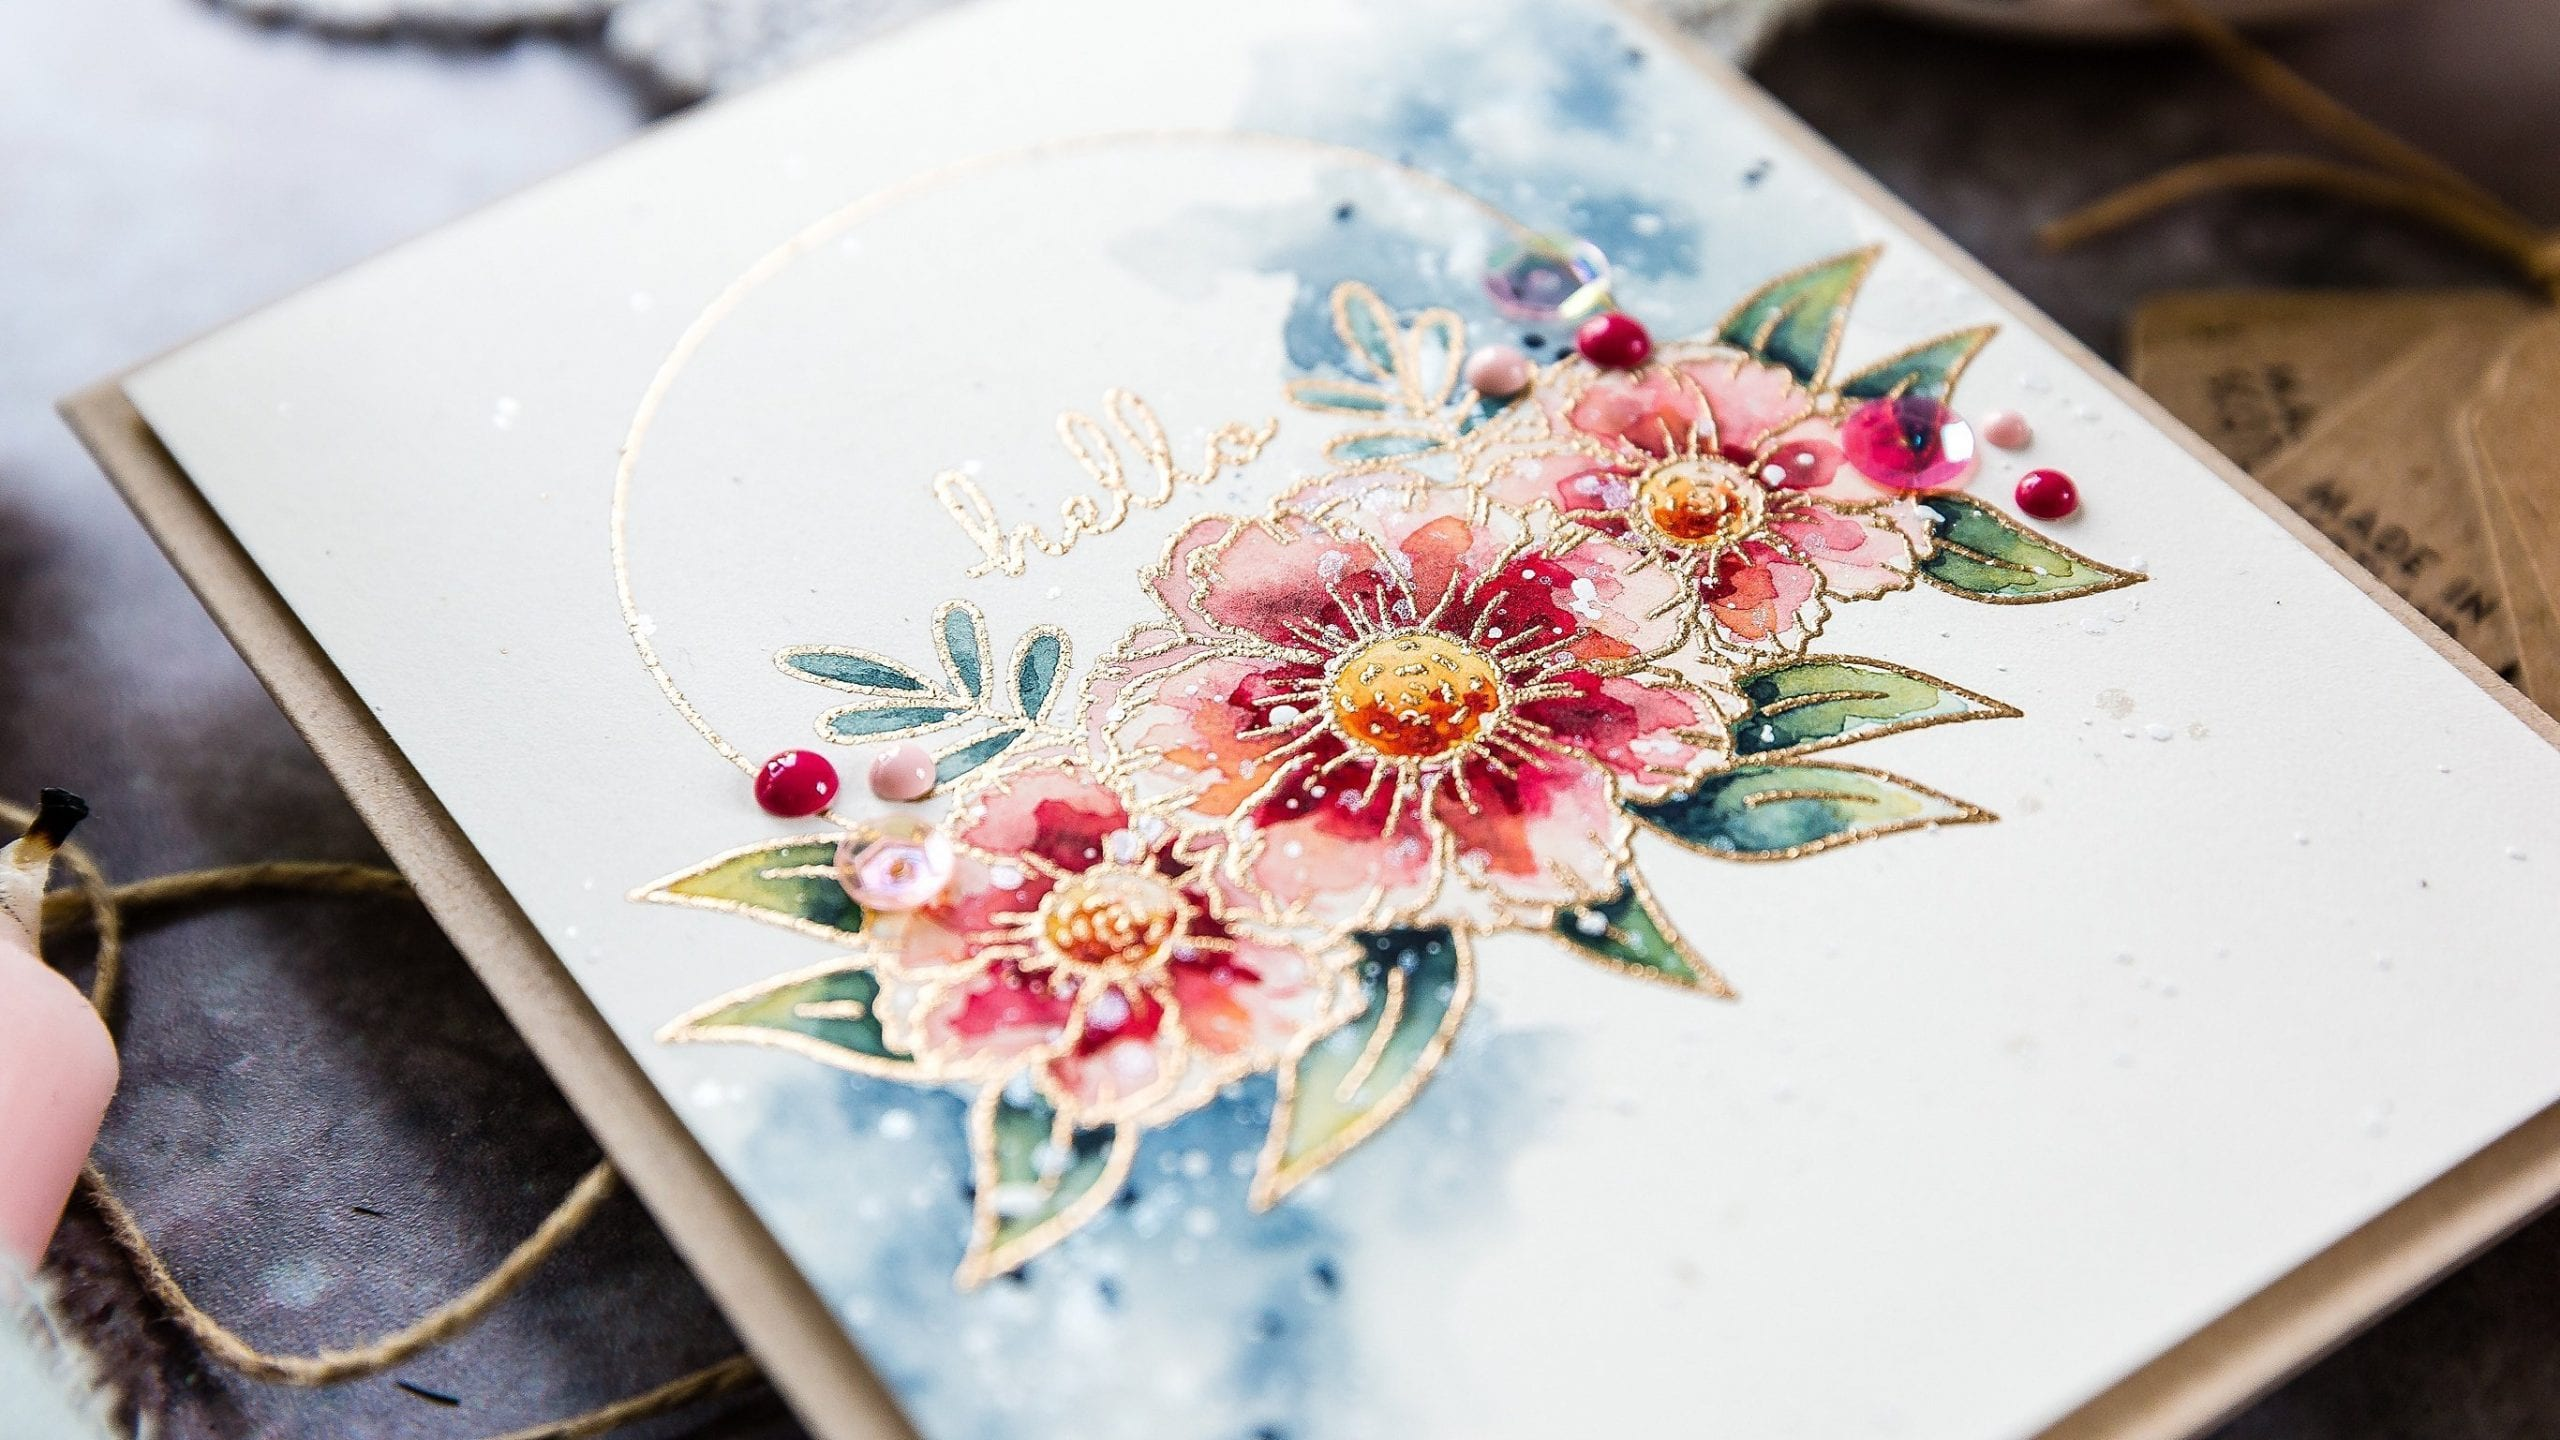 Watercoloured floral wreath, handmade card by Debby Hughes using supplies from Studio Katia. Find out more here: https://limedoodledesign.com/2019/09/video-studio-katia-stamptember/